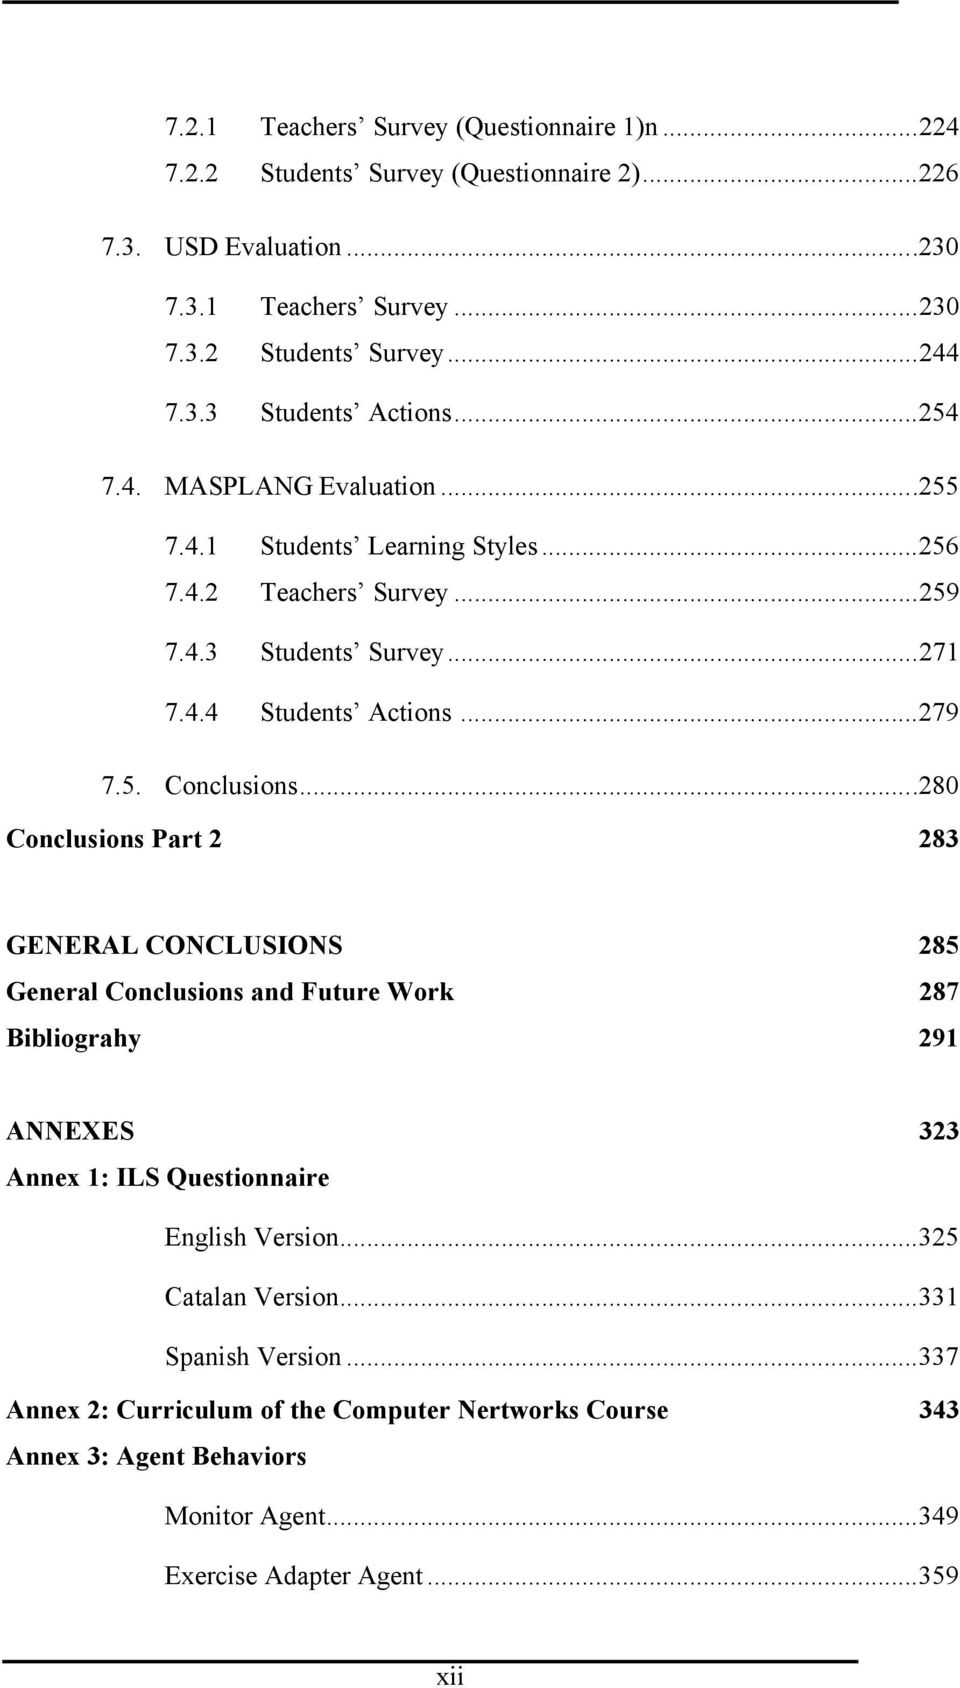 ..280 Conclusions Part 2 283 GENERAL CONCLUSIONS 285 General Conclusions and Future Work 287 Bibliograhy 291 ANNEXES 323 Annex 1: ILS Questionnaire English Version.